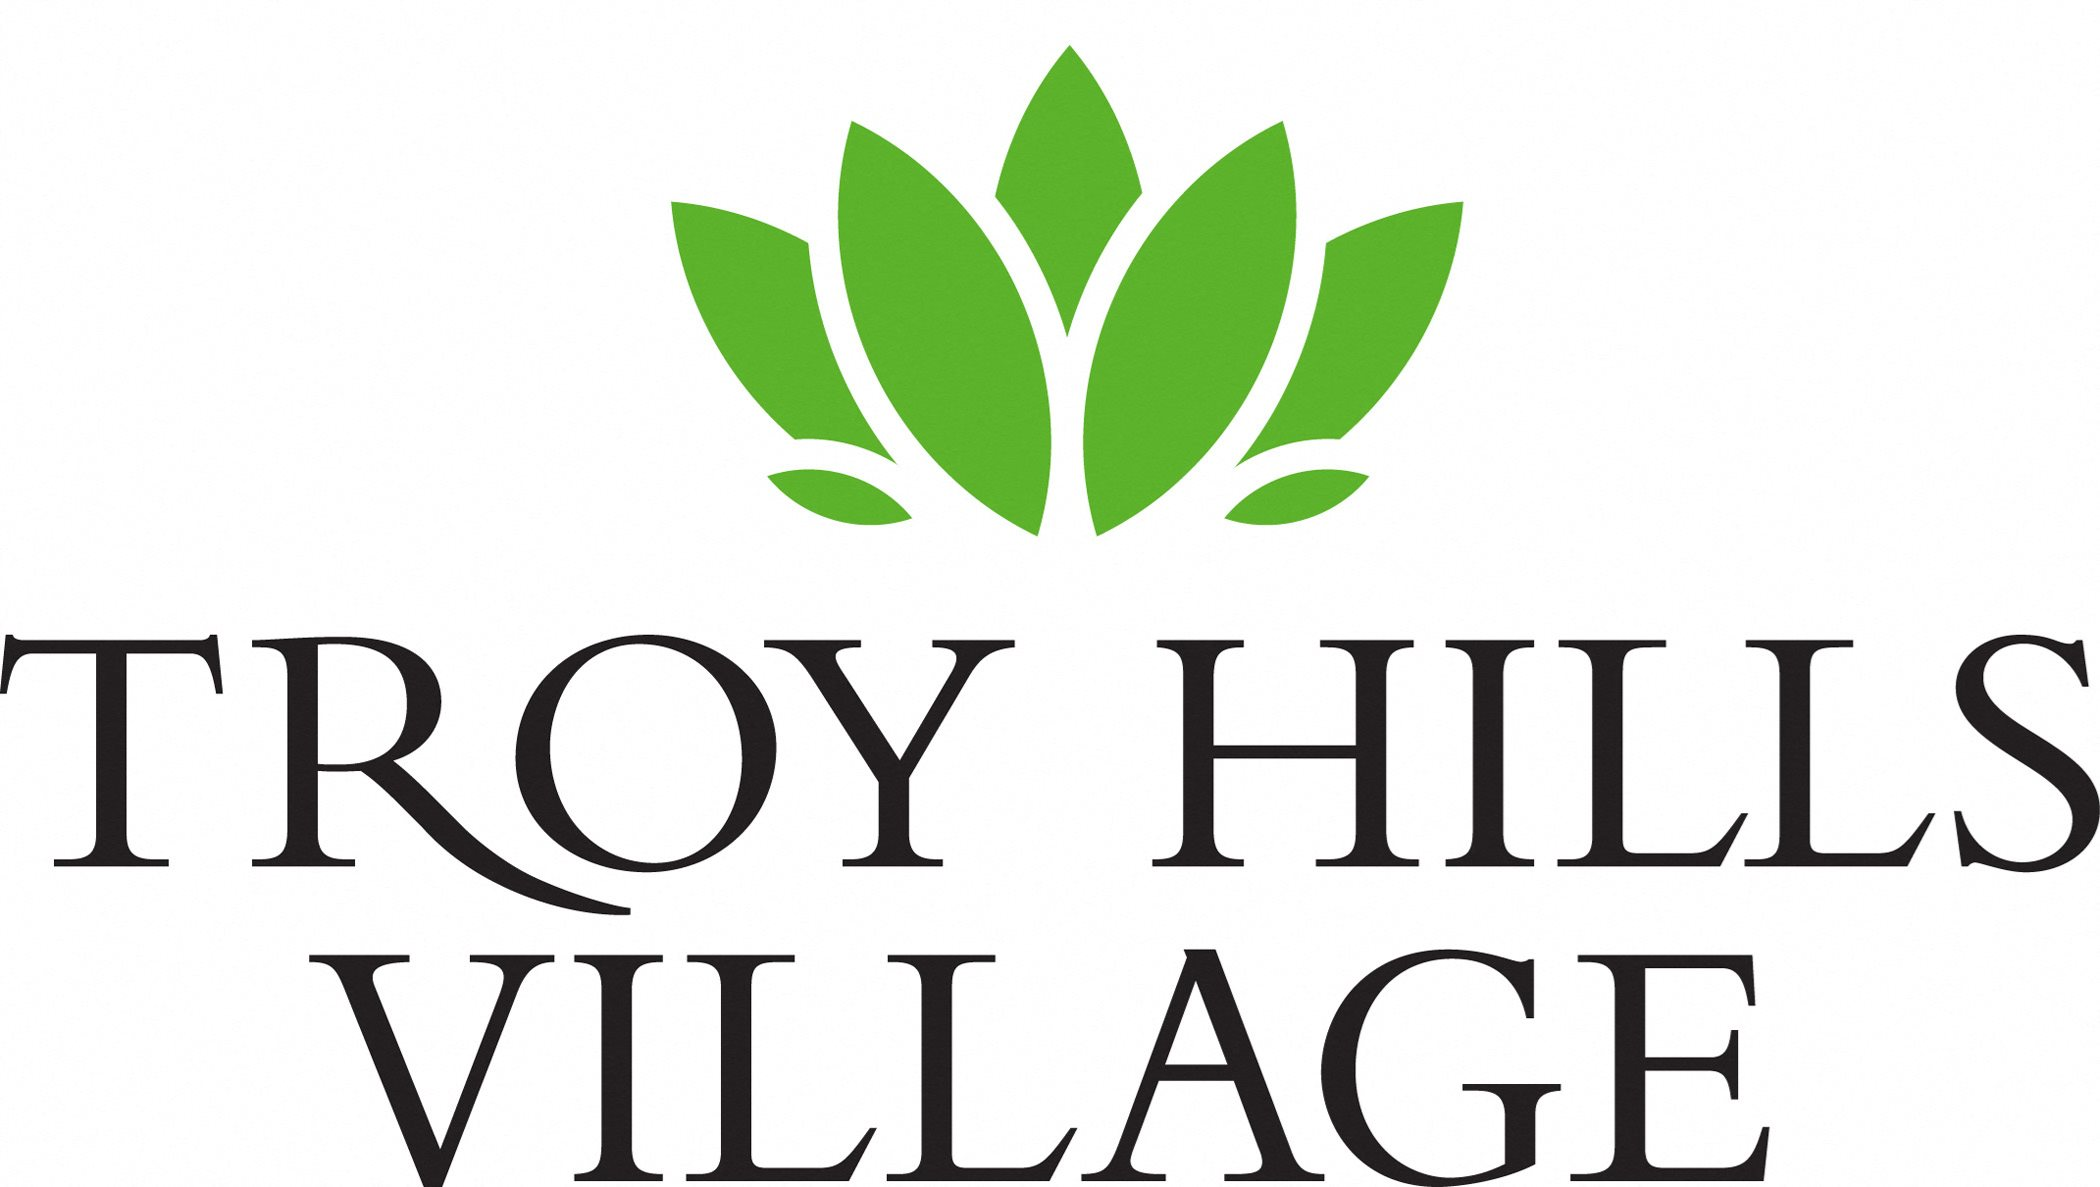 The new logo for Troy Hills Village